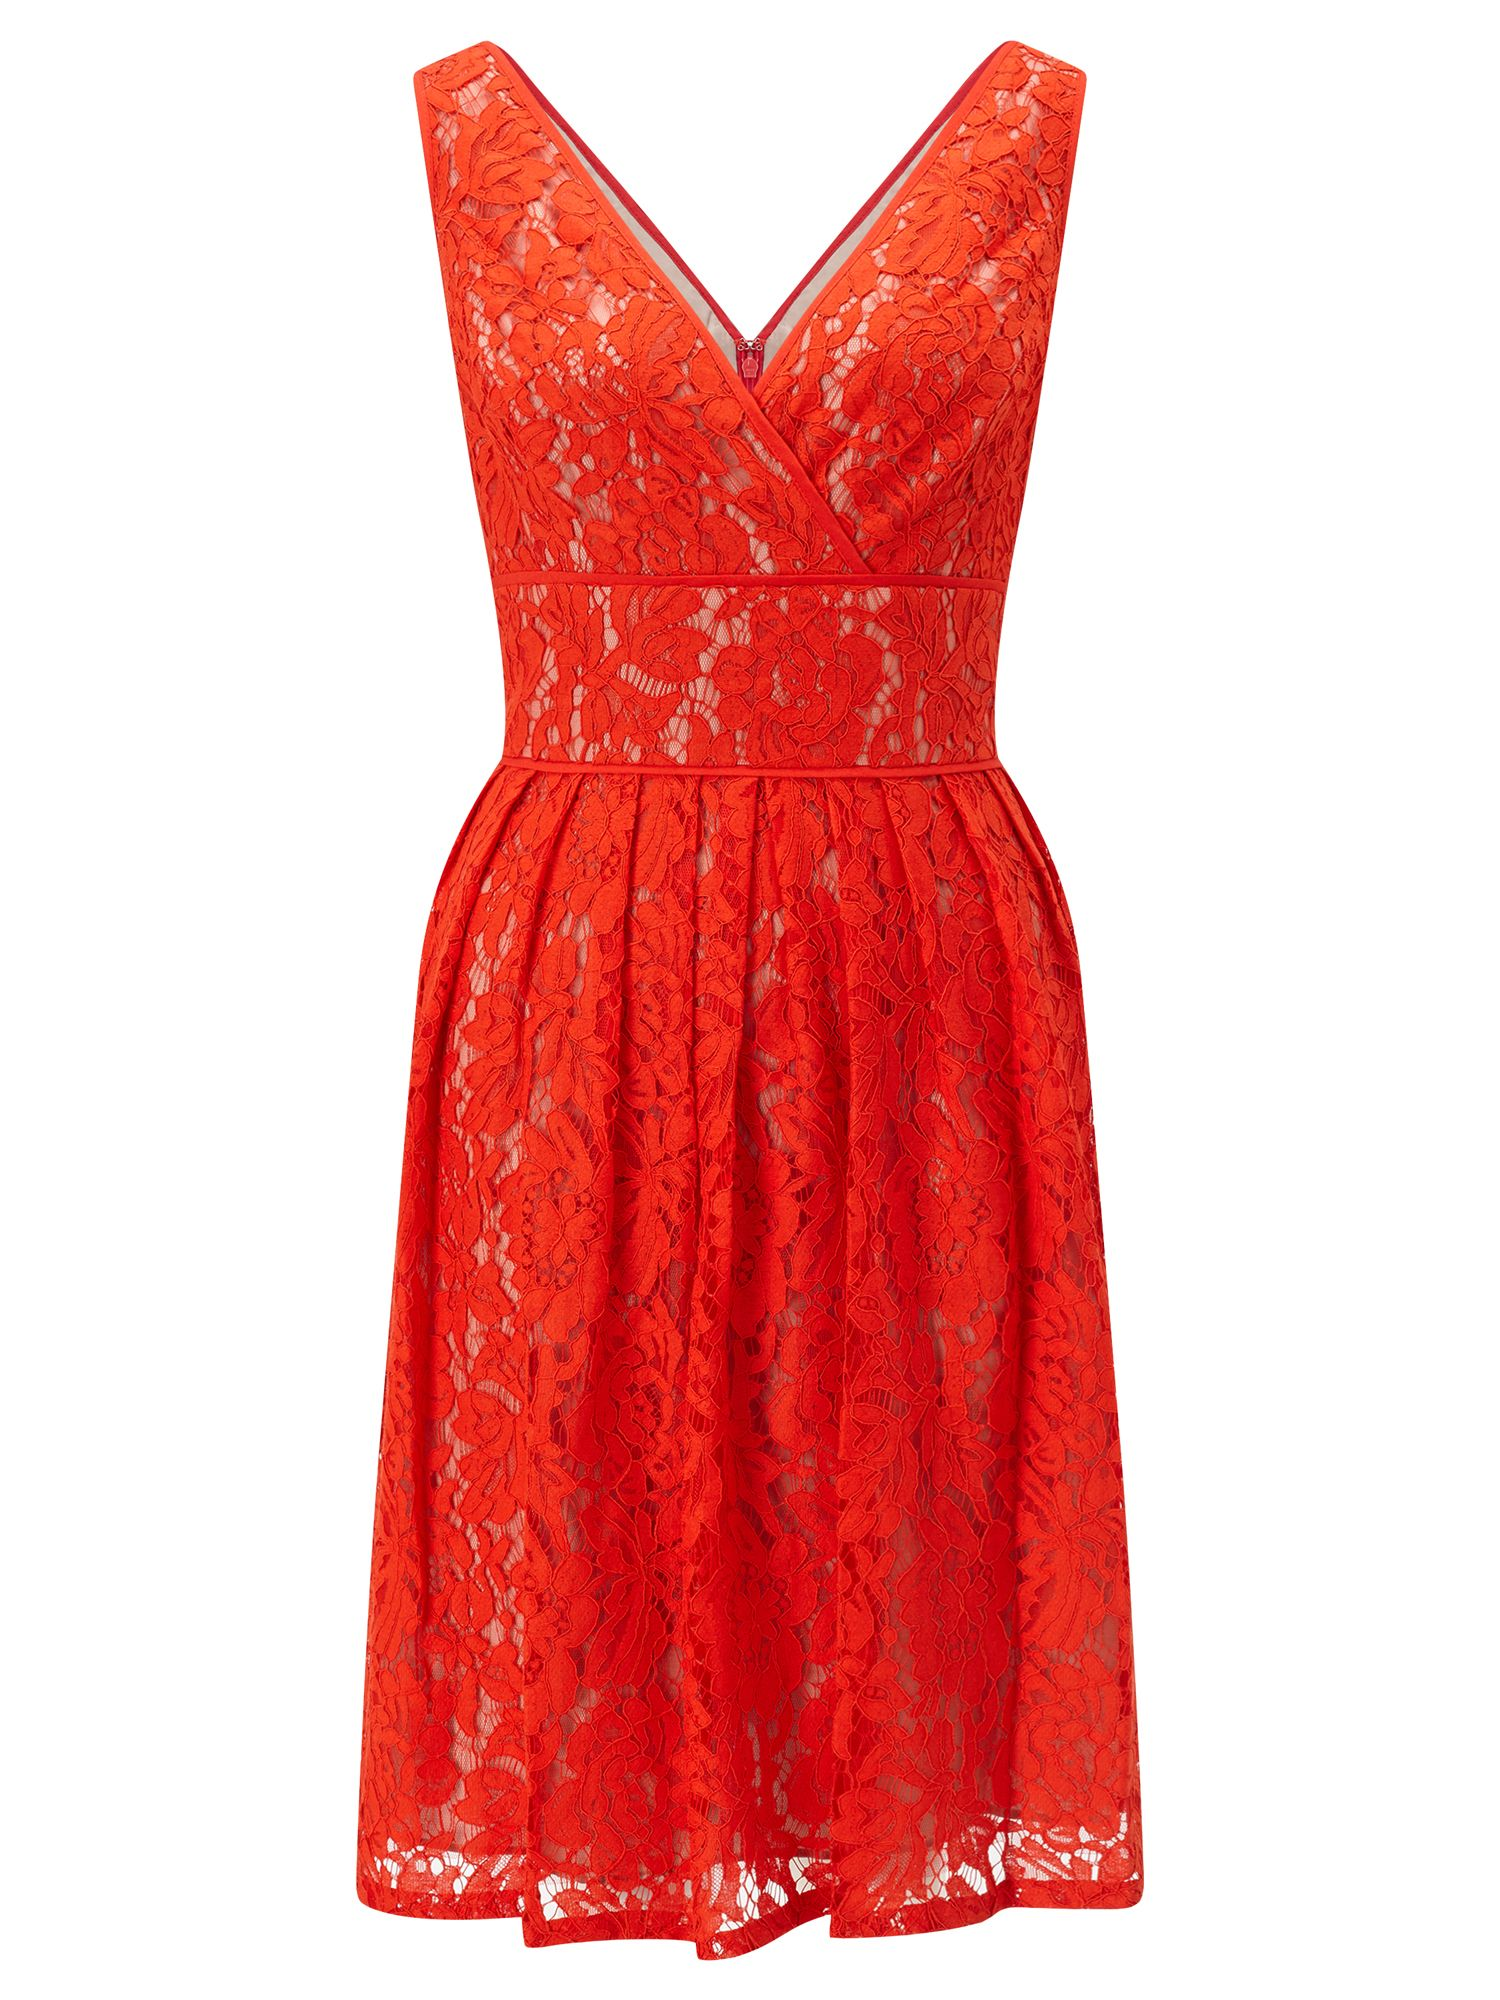 Adrianna Papell Lace Dress, Orange